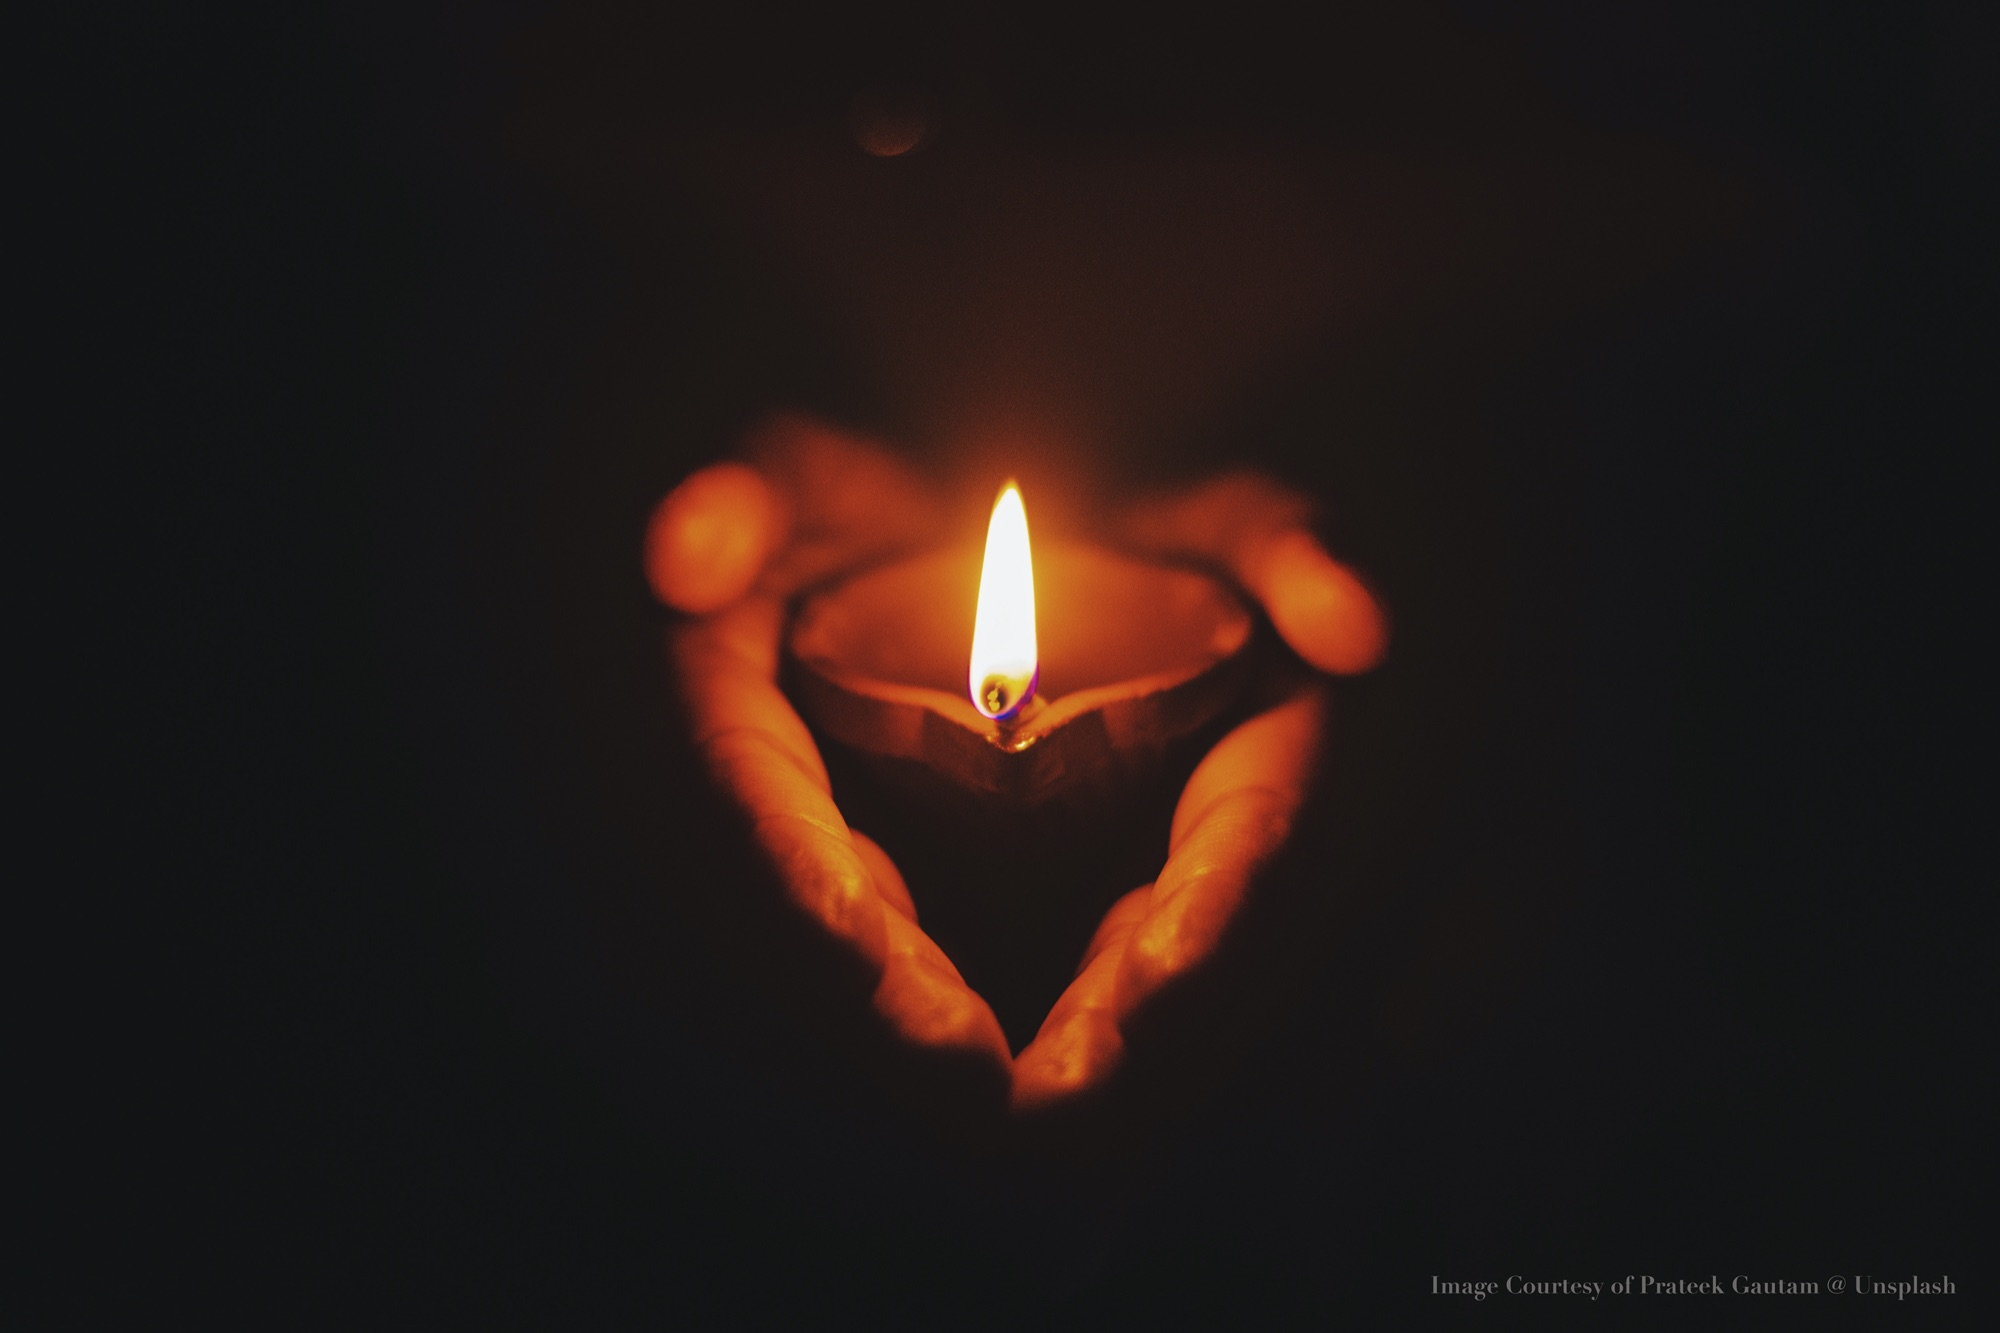 Hands holding a candle photograph by Pateek  Gautam on Unsplash